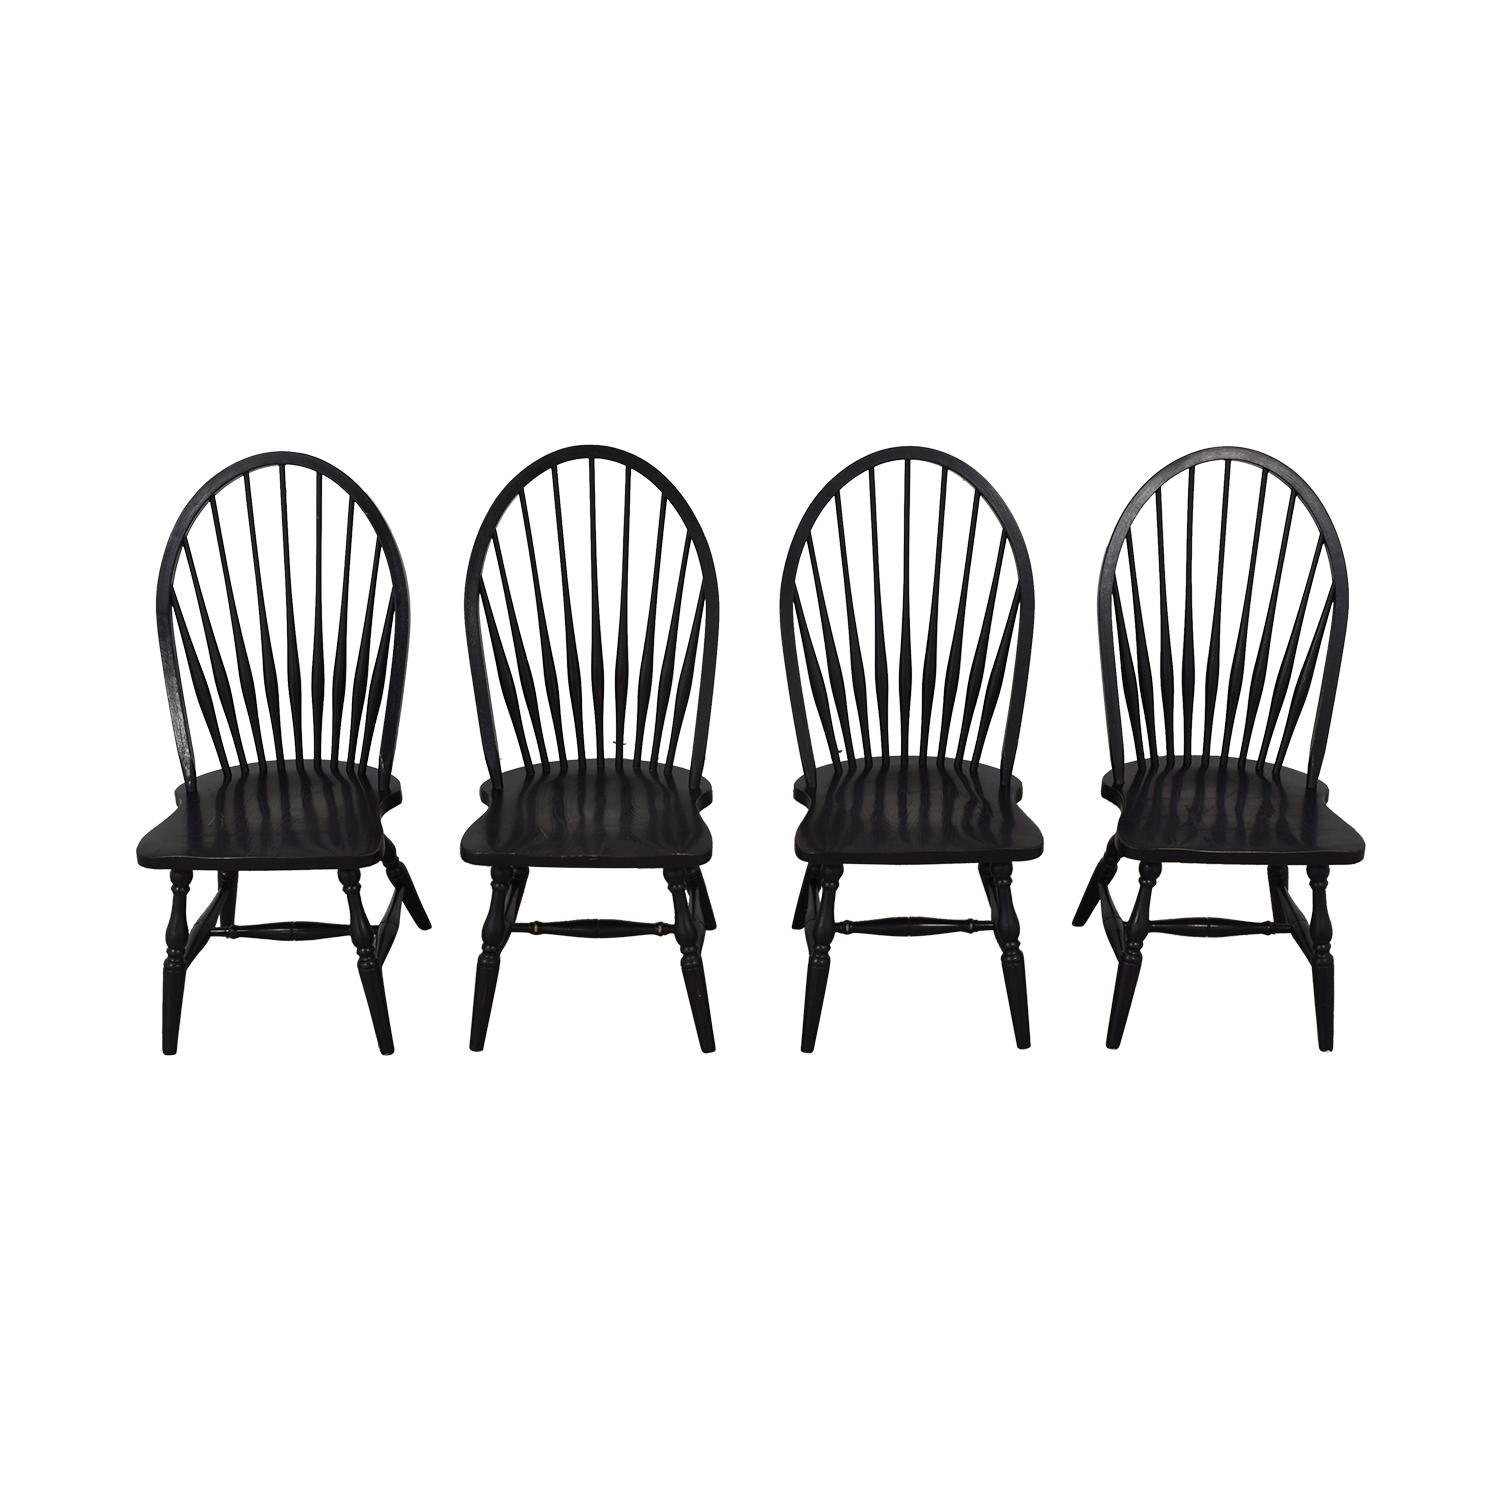 Country Willow Country Willow Windsor Dining Chairs used